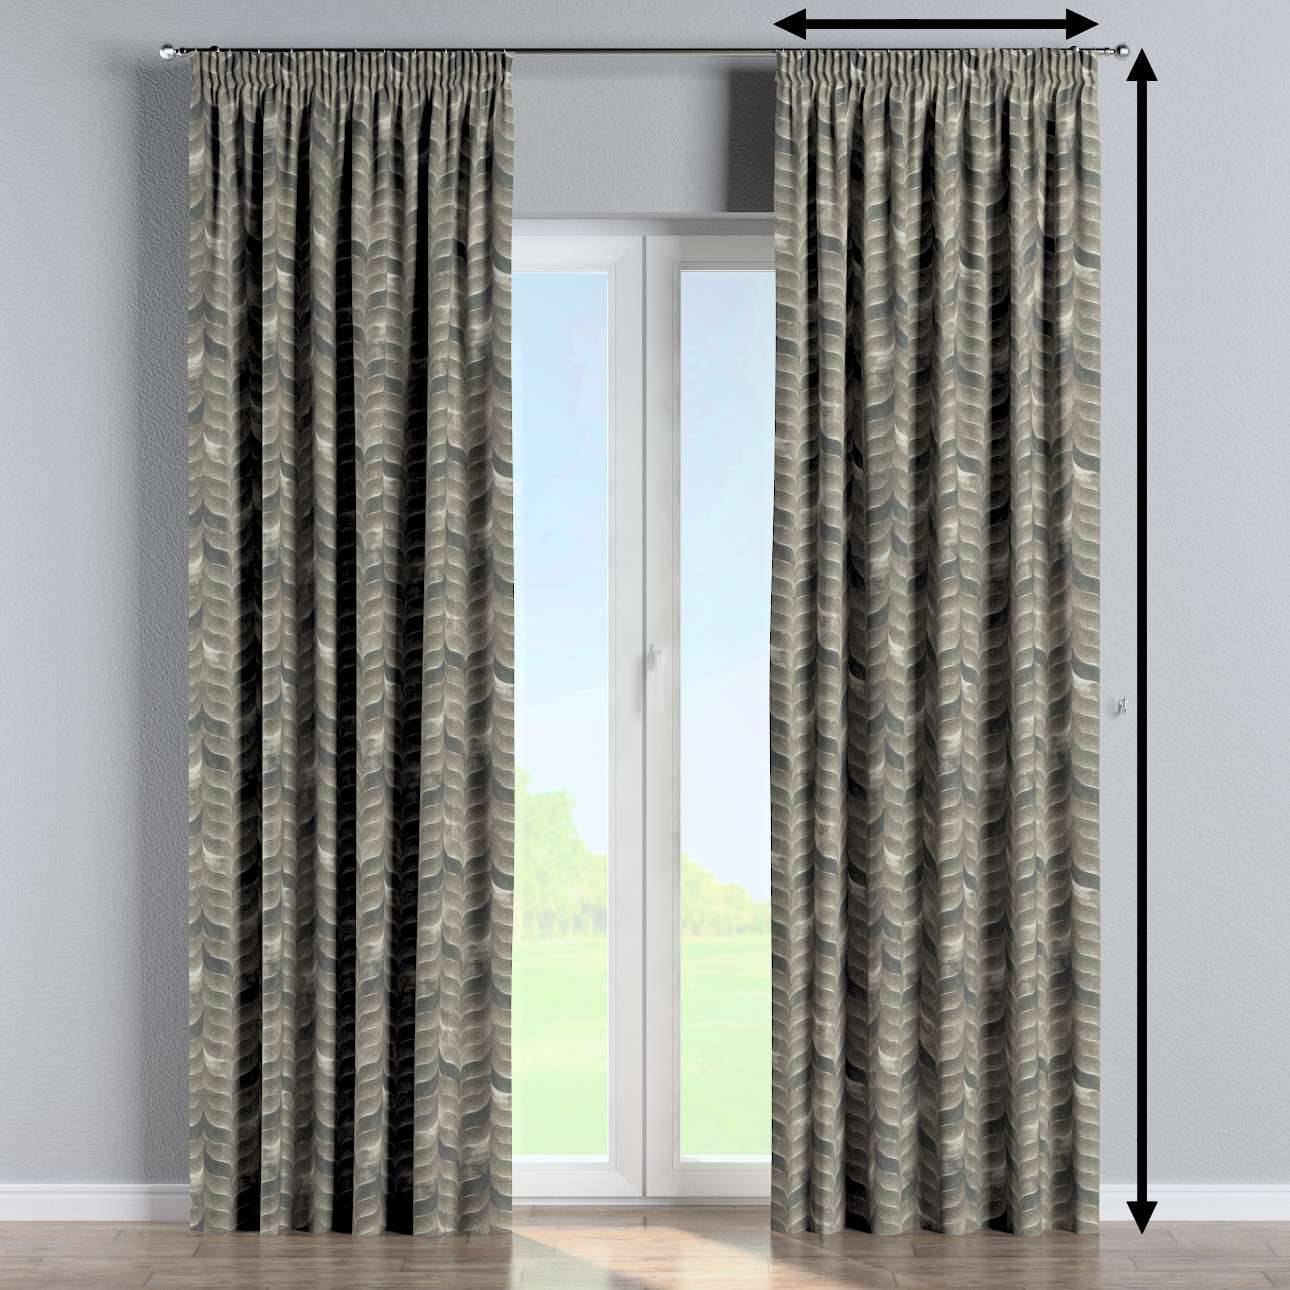 Pencil pleat curtain in collection Abigail, fabric: 143-12